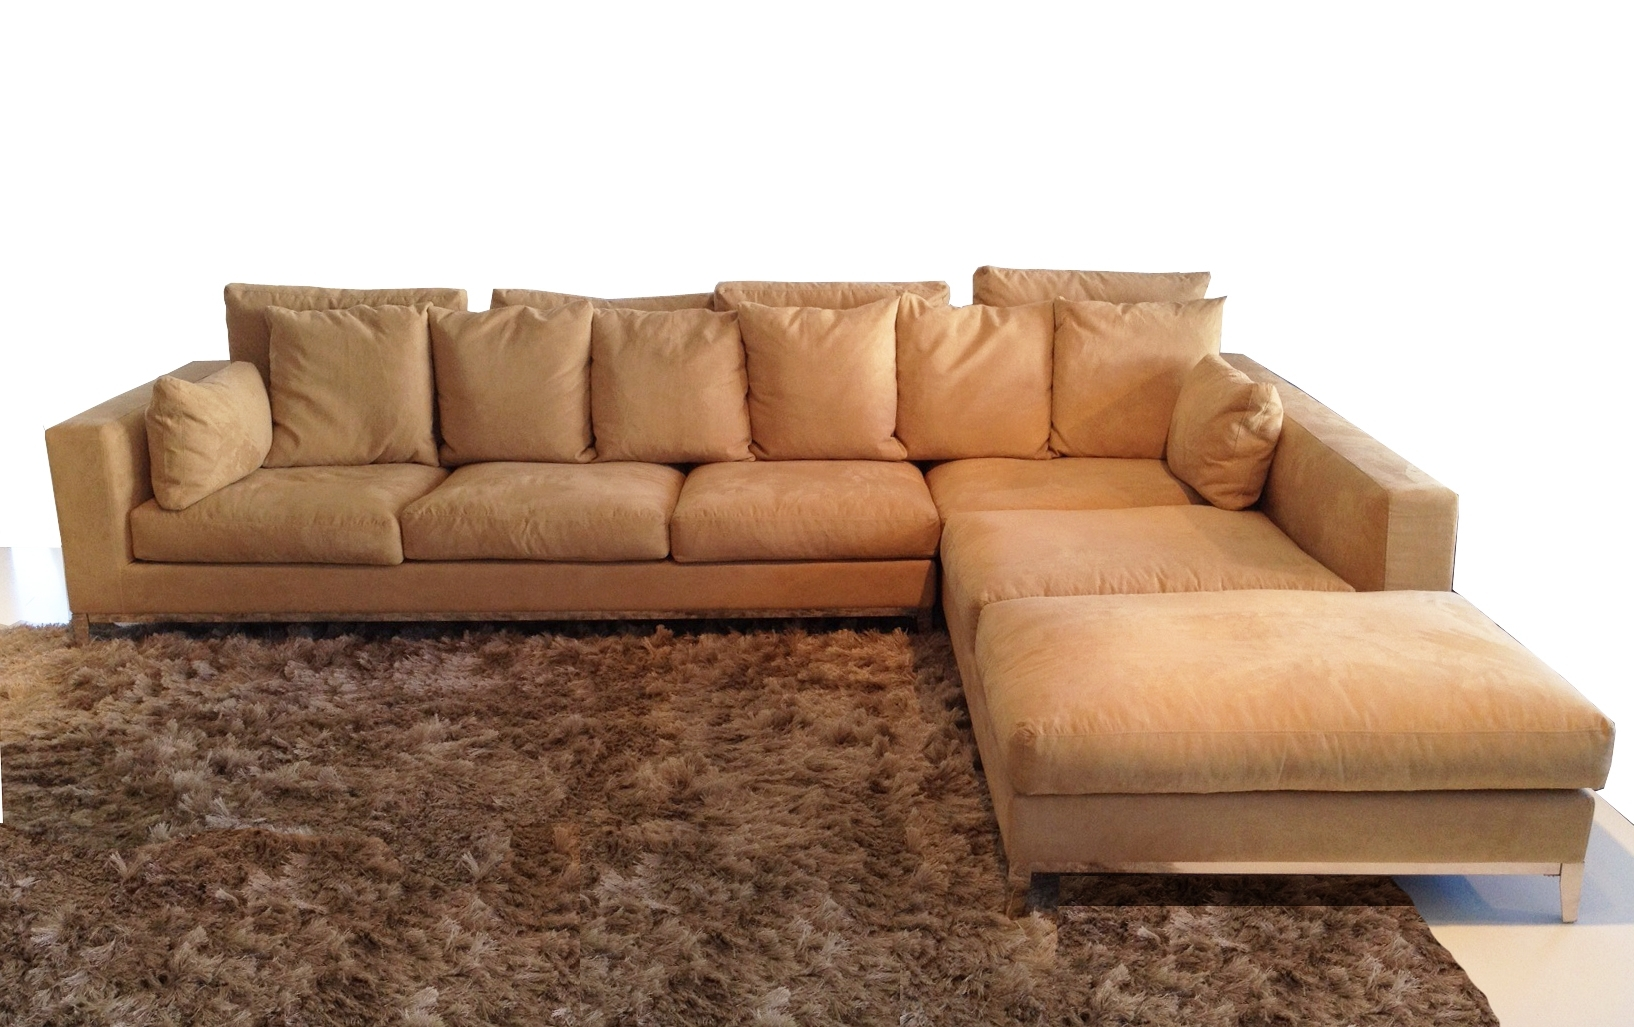 Modern Furniture For Most Current Long Modern Sofas (View 10 of 15)